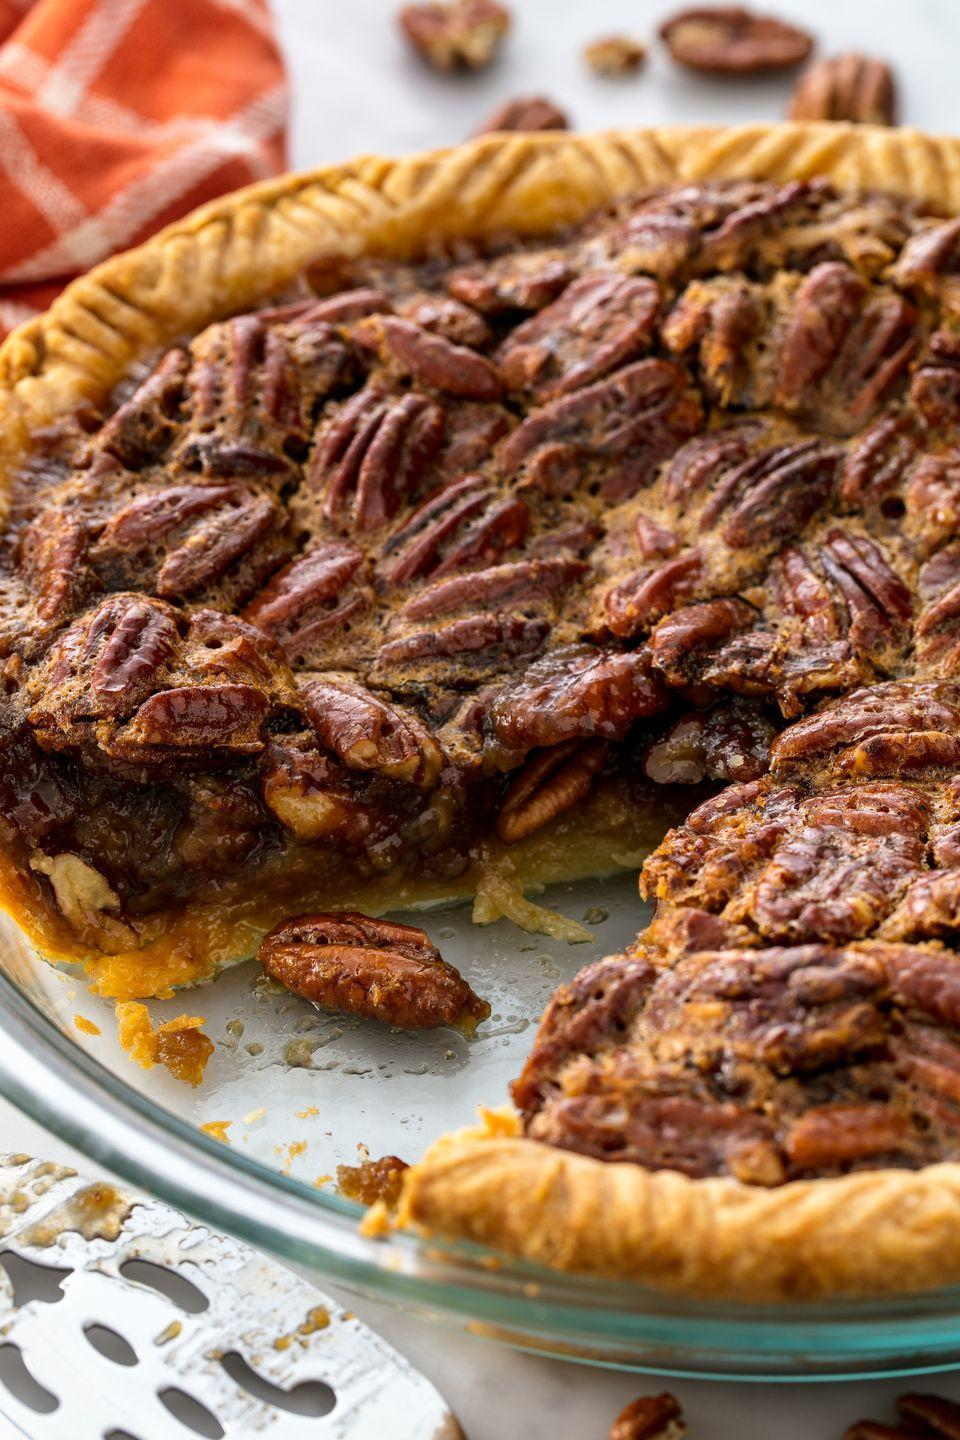 "<p>If you can't get New Orleans pecan pie, you can at least make it for yourself.</p><p>Get the recipe from <a href=""https://www.delish.com/cooking/recipe-ideas/recipes/a55685/easy-pecan-pie-recipe/"" rel=""nofollow noopener"" target=""_blank"" data-ylk=""slk:Delish"" class=""link rapid-noclick-resp"">Delish</a>.<br></p>"